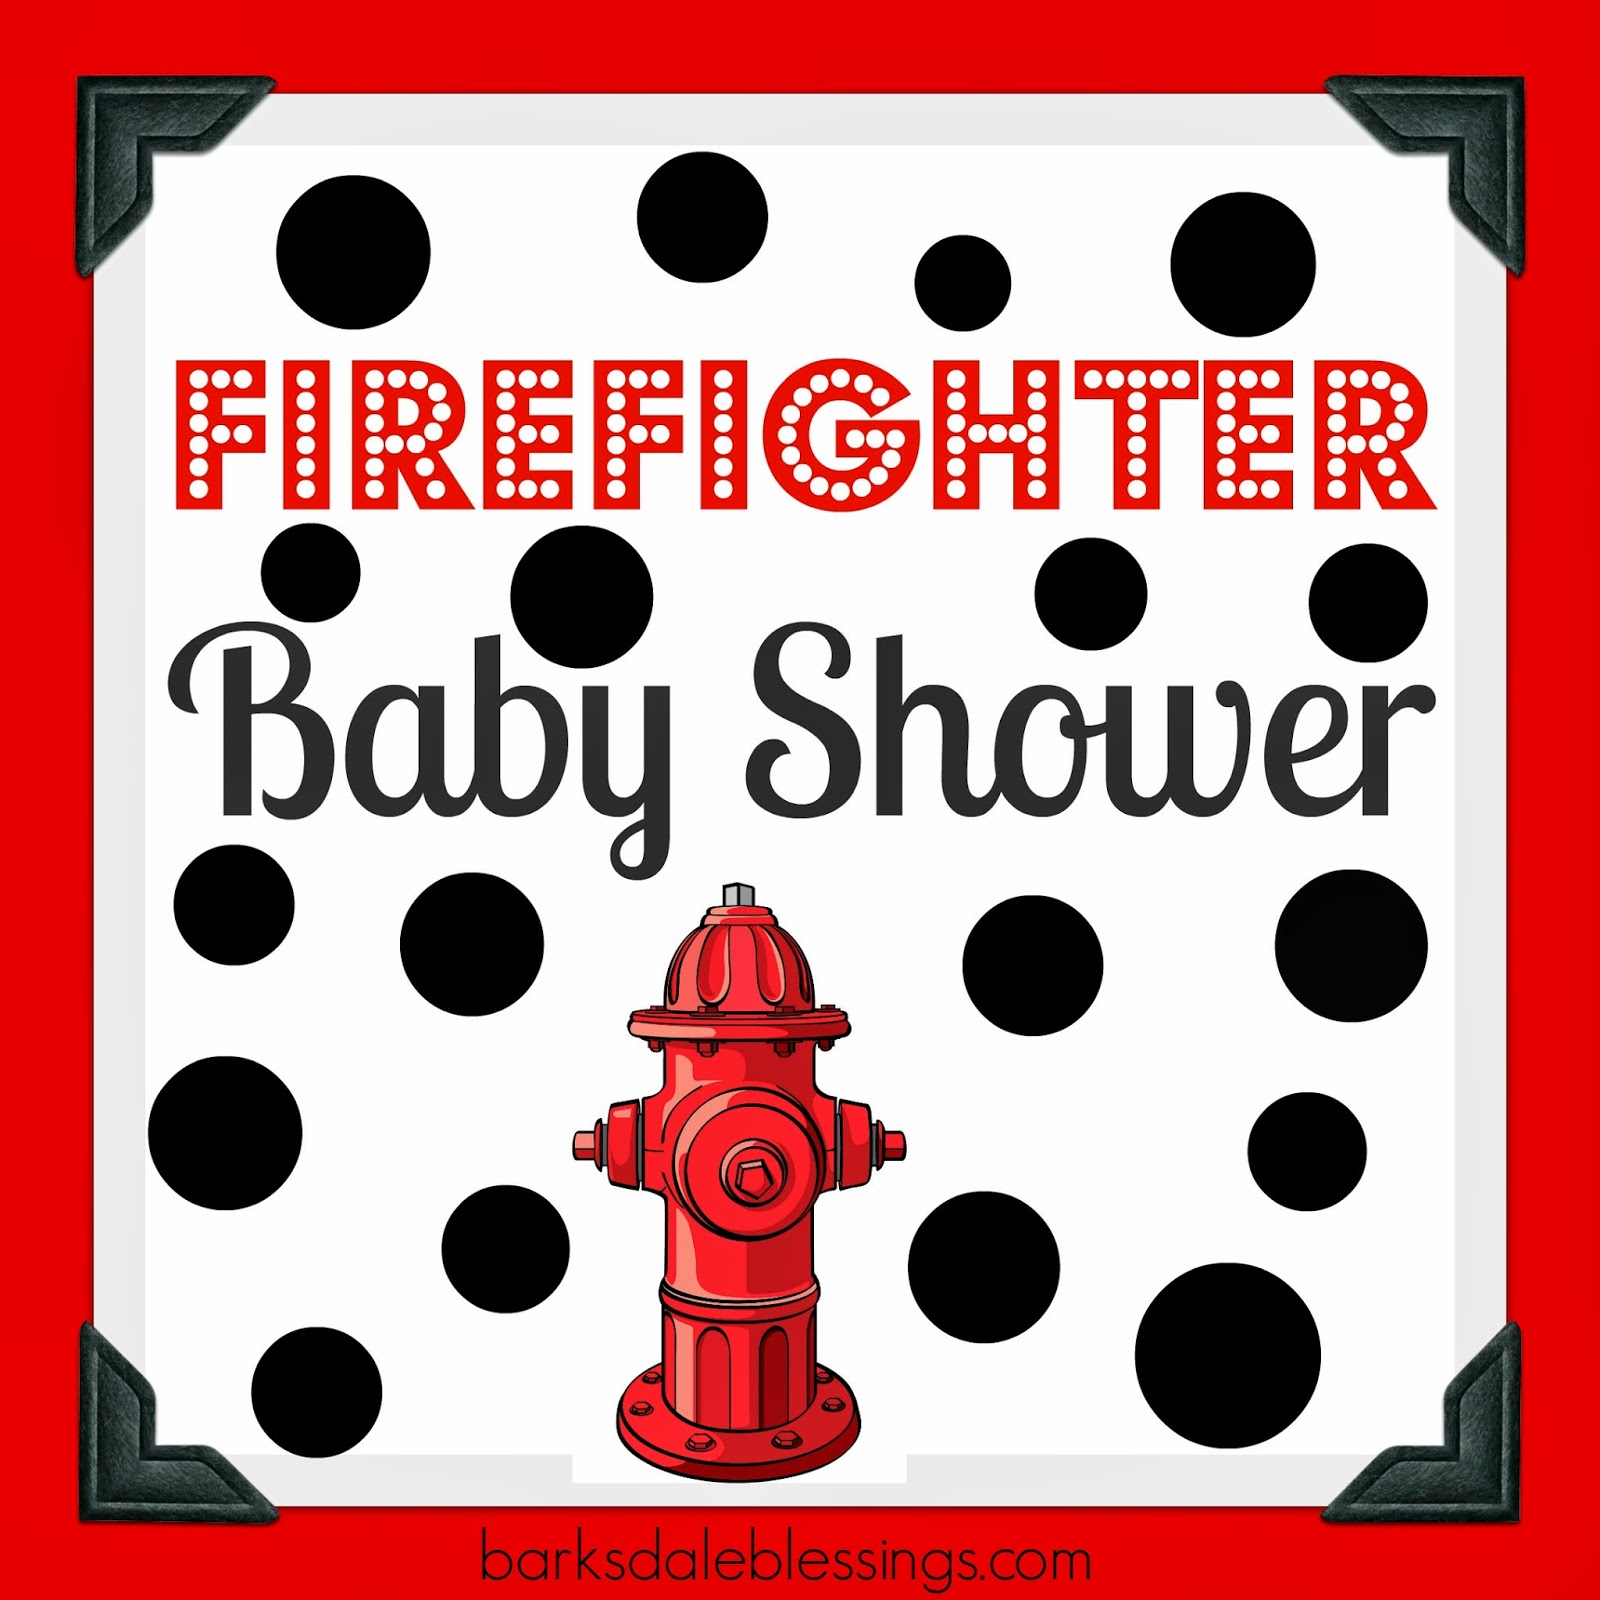 Barksdale Blessings: Firefighter Baby Shower